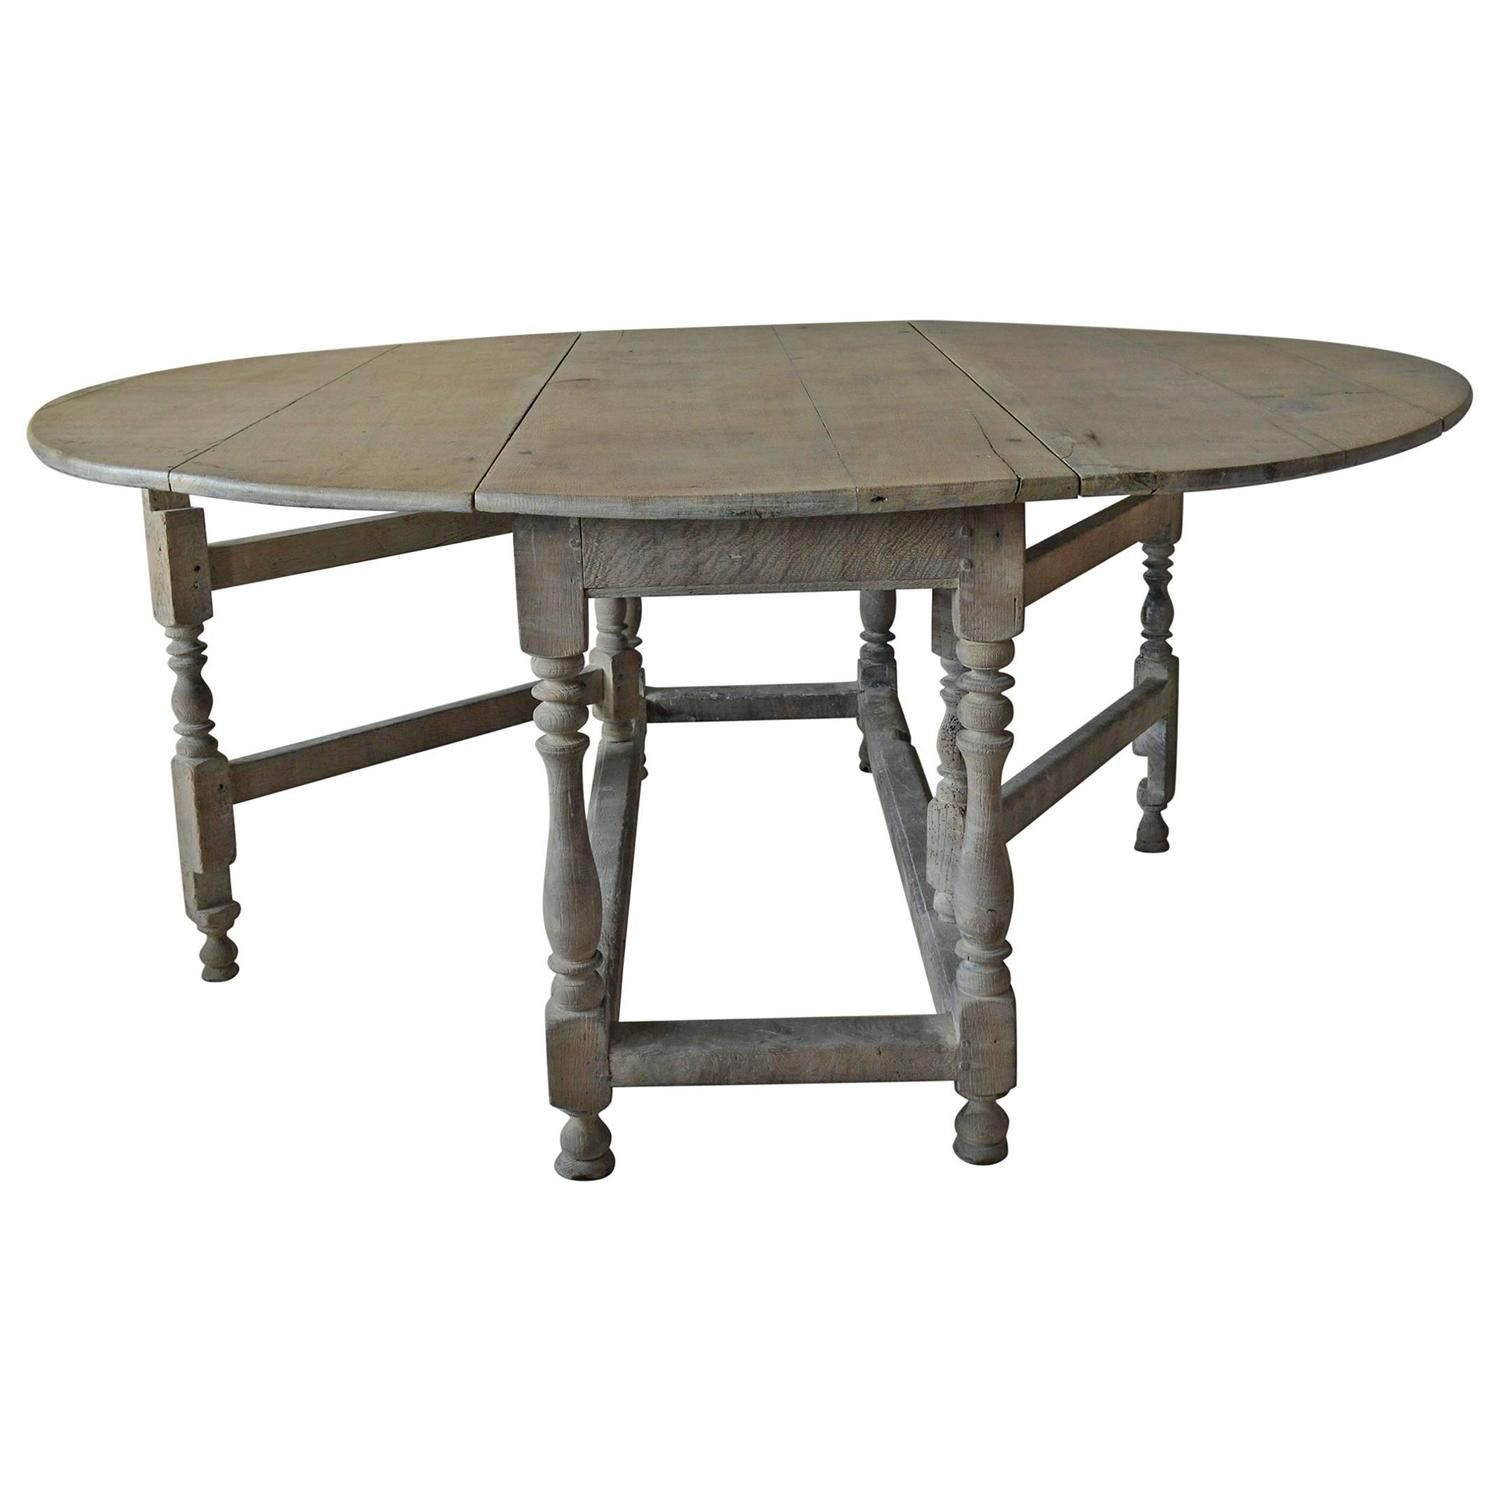 Large Antique Limed Oak Round Or Oval Dining Table English 18th